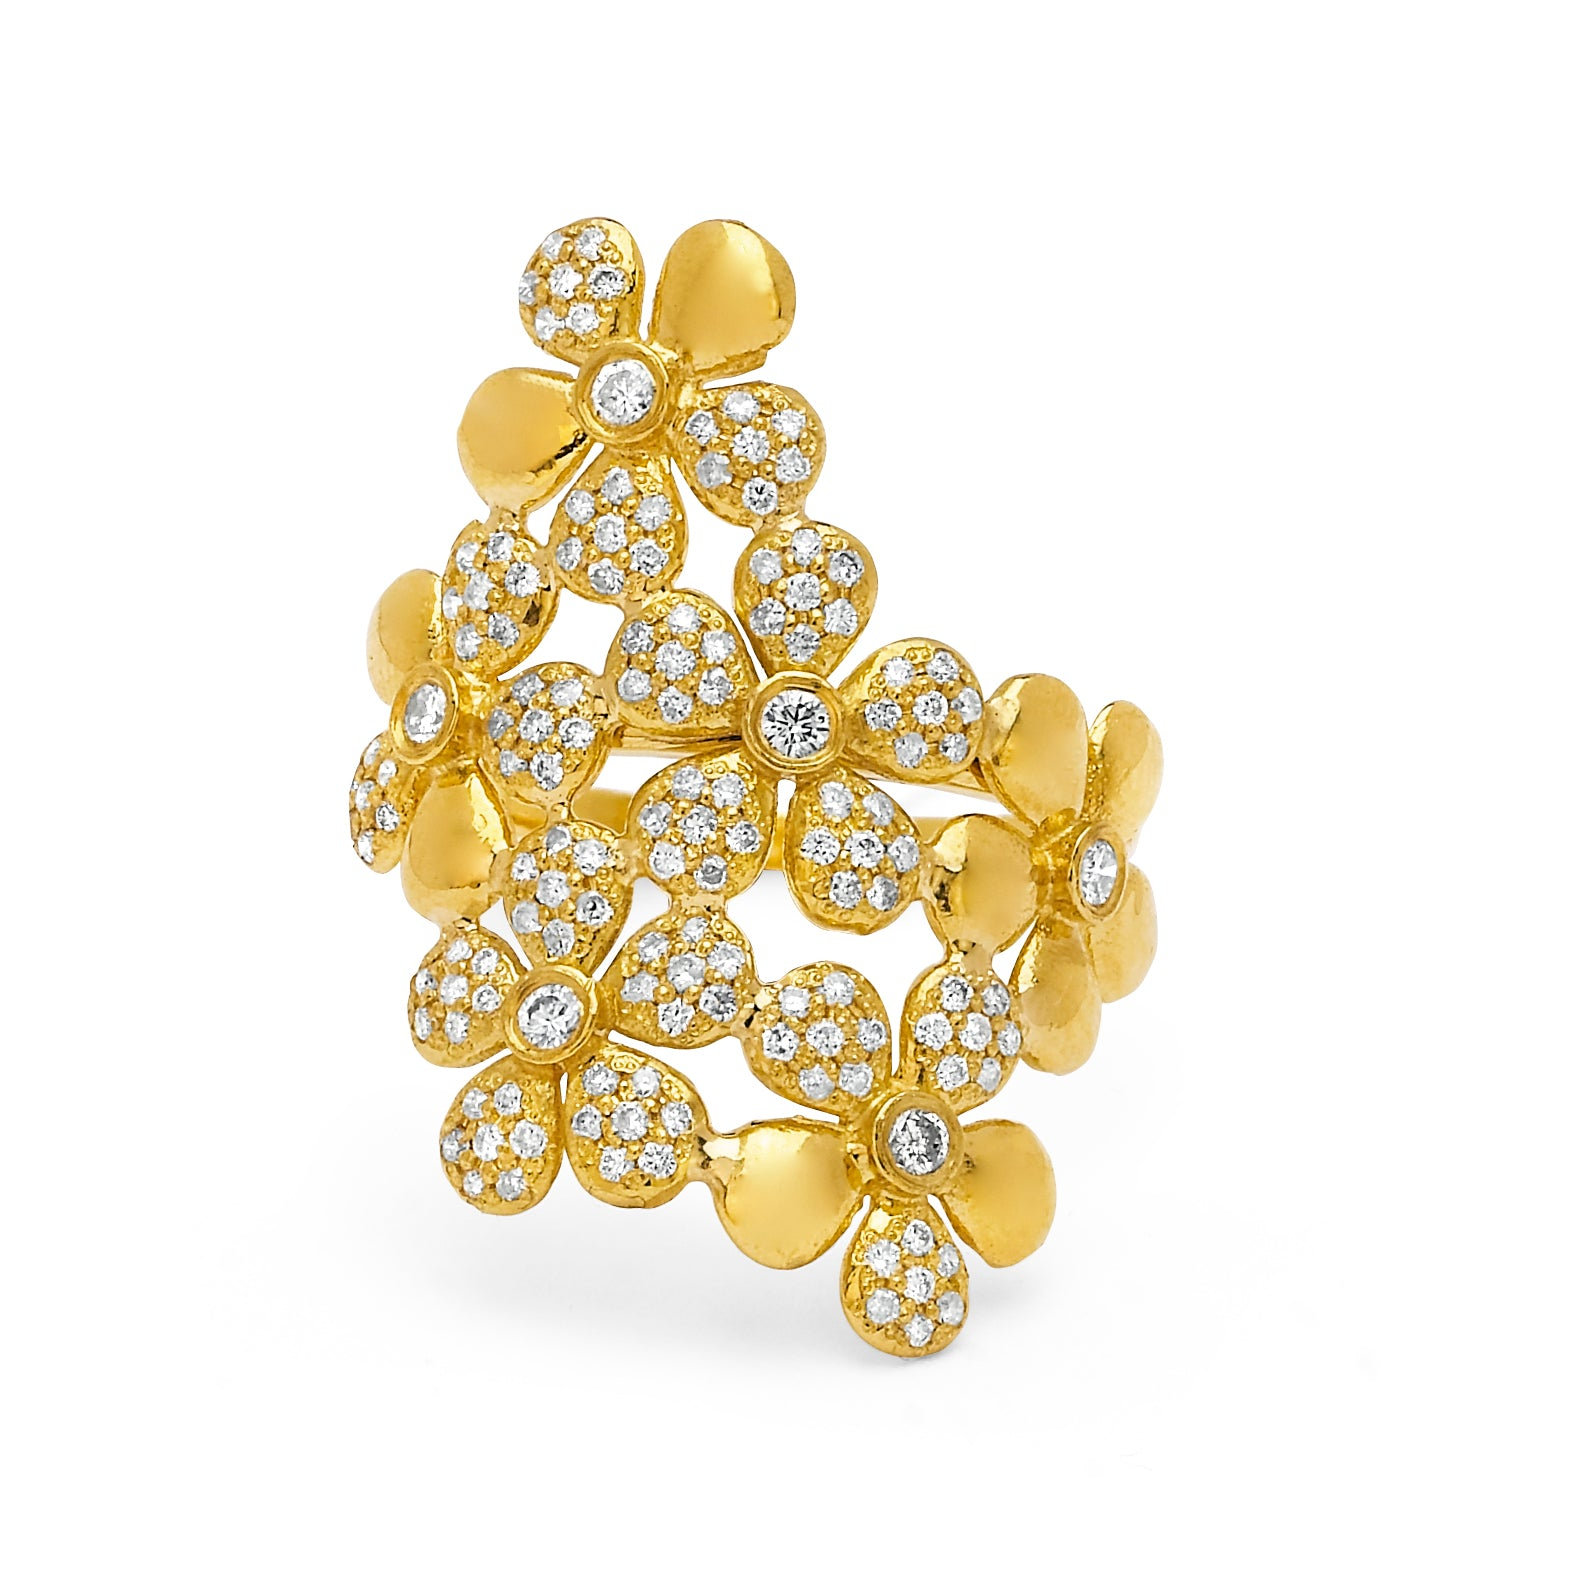 Yellow Marquerite Bouquet Thumb Ring